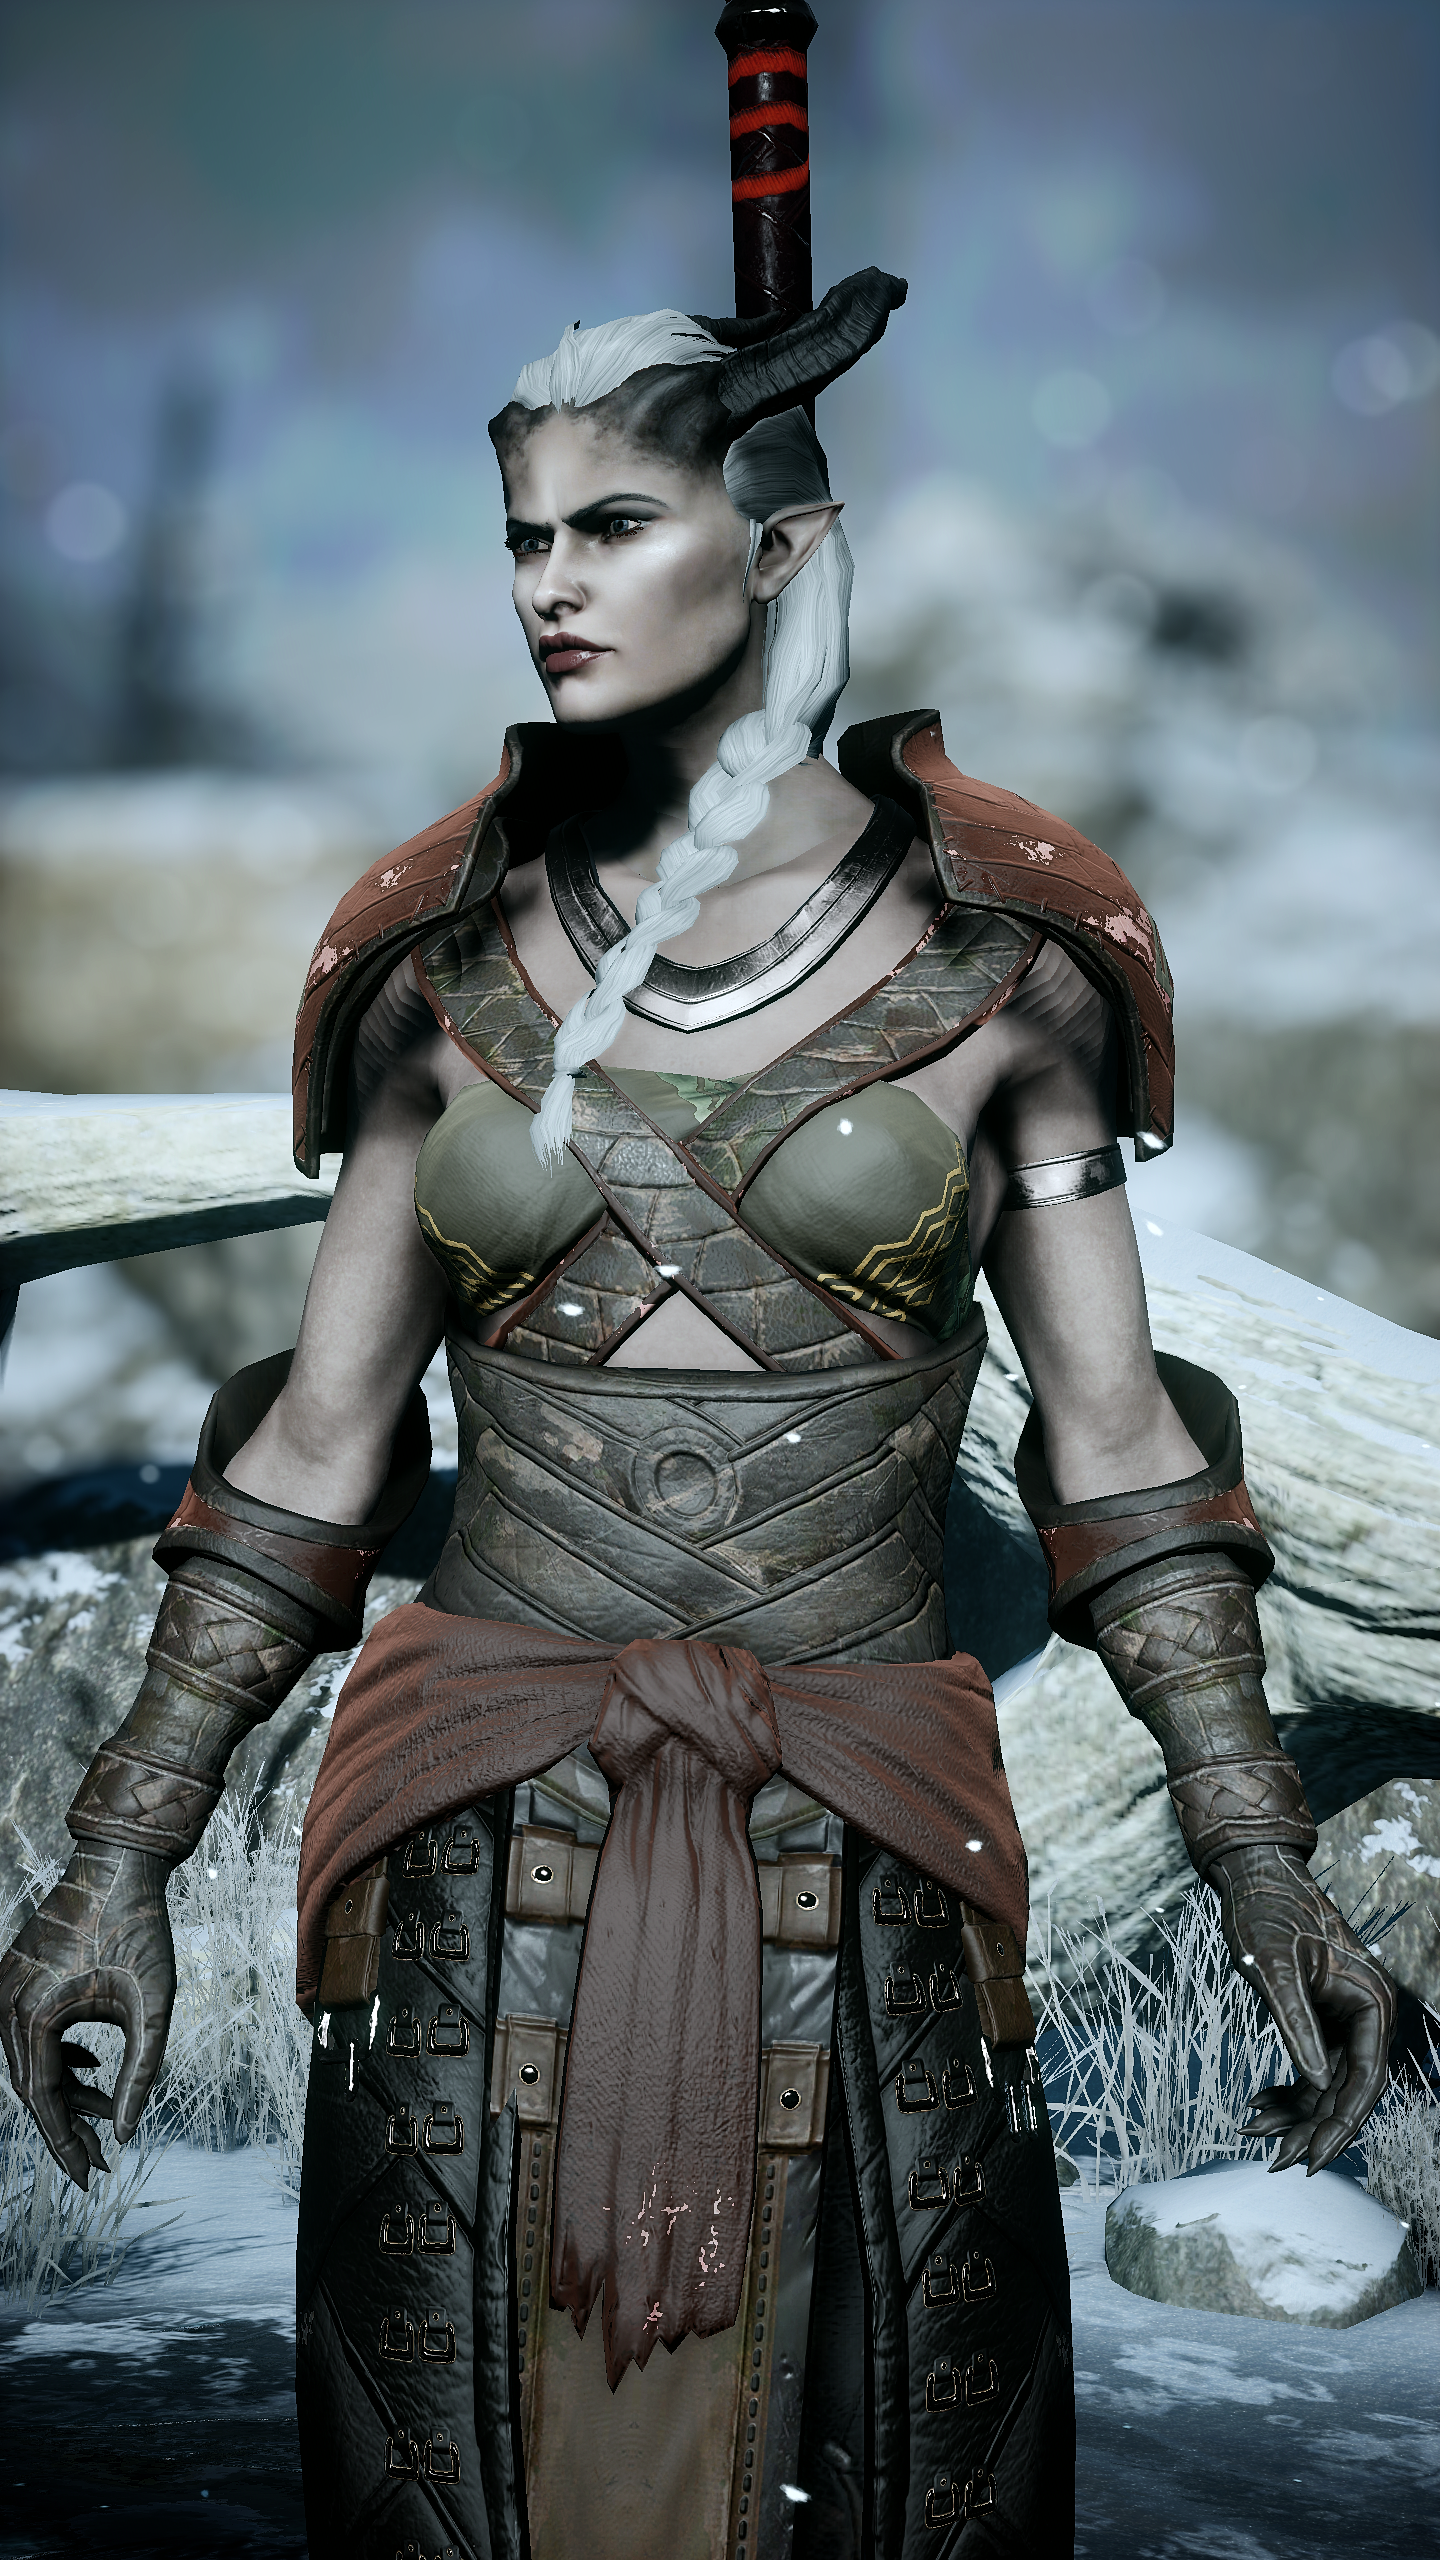 Post Pictures Of Your Inquisitor Here V 2 Bioware Social Network Fan Forums The spoils of the qunari content pack adds new items to your inquisition, inspired by the style of par vollen! post pictures of your inquisitor here